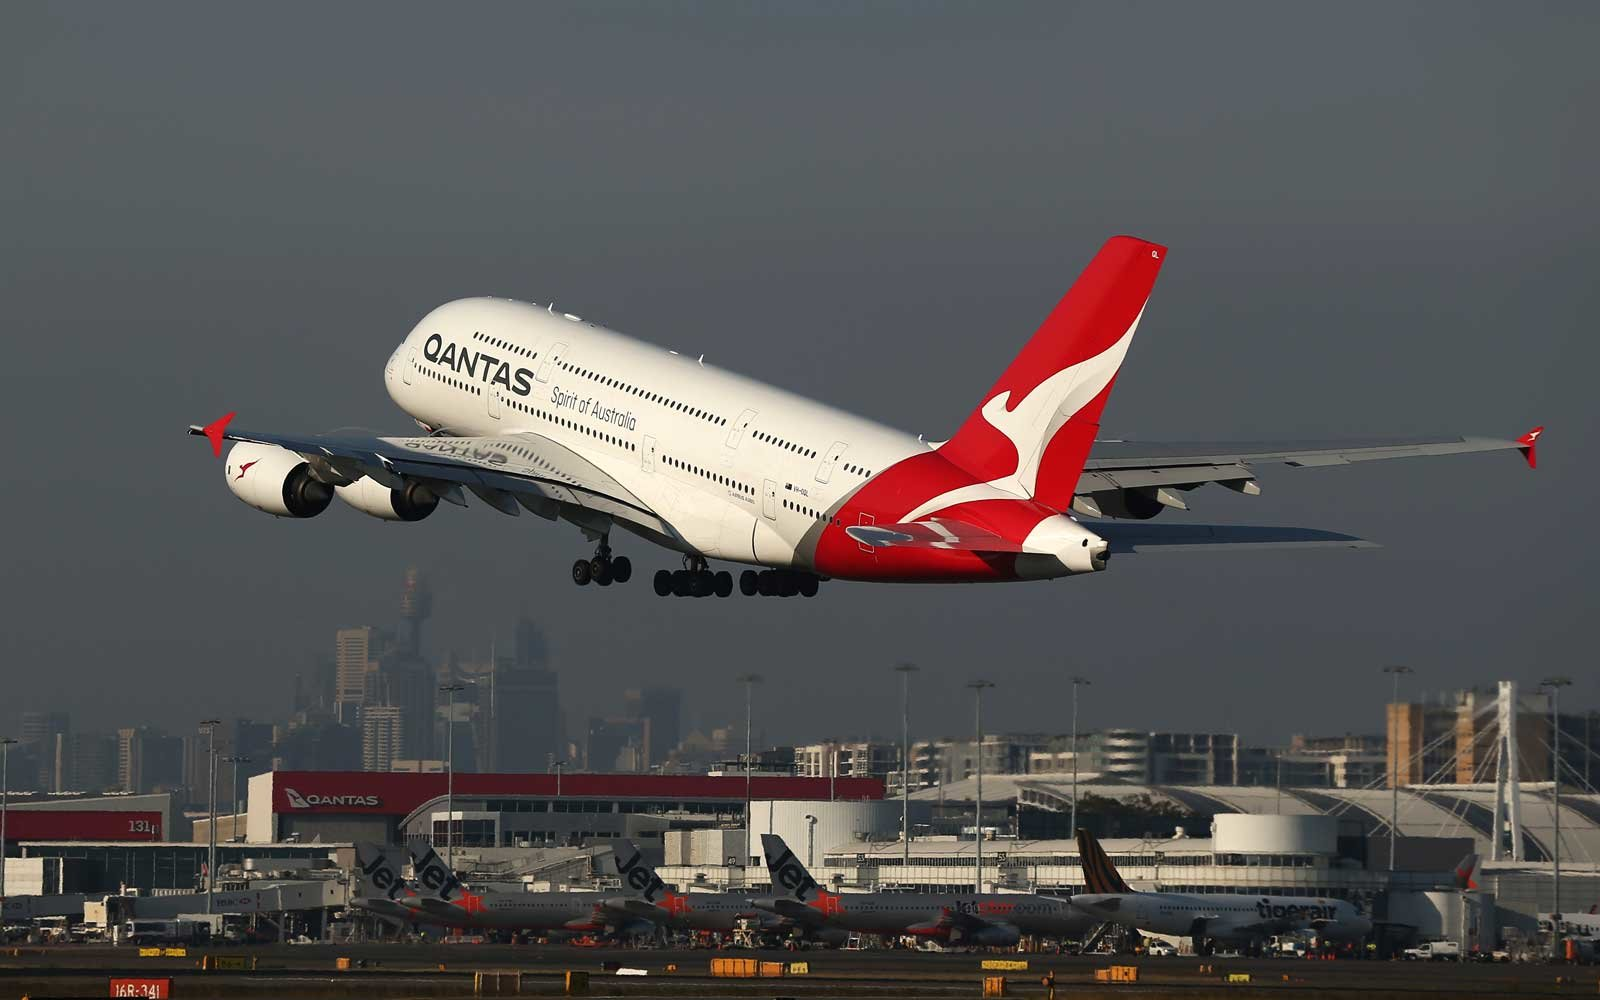 Behind the record-breaking Qantas London to Sydney flight